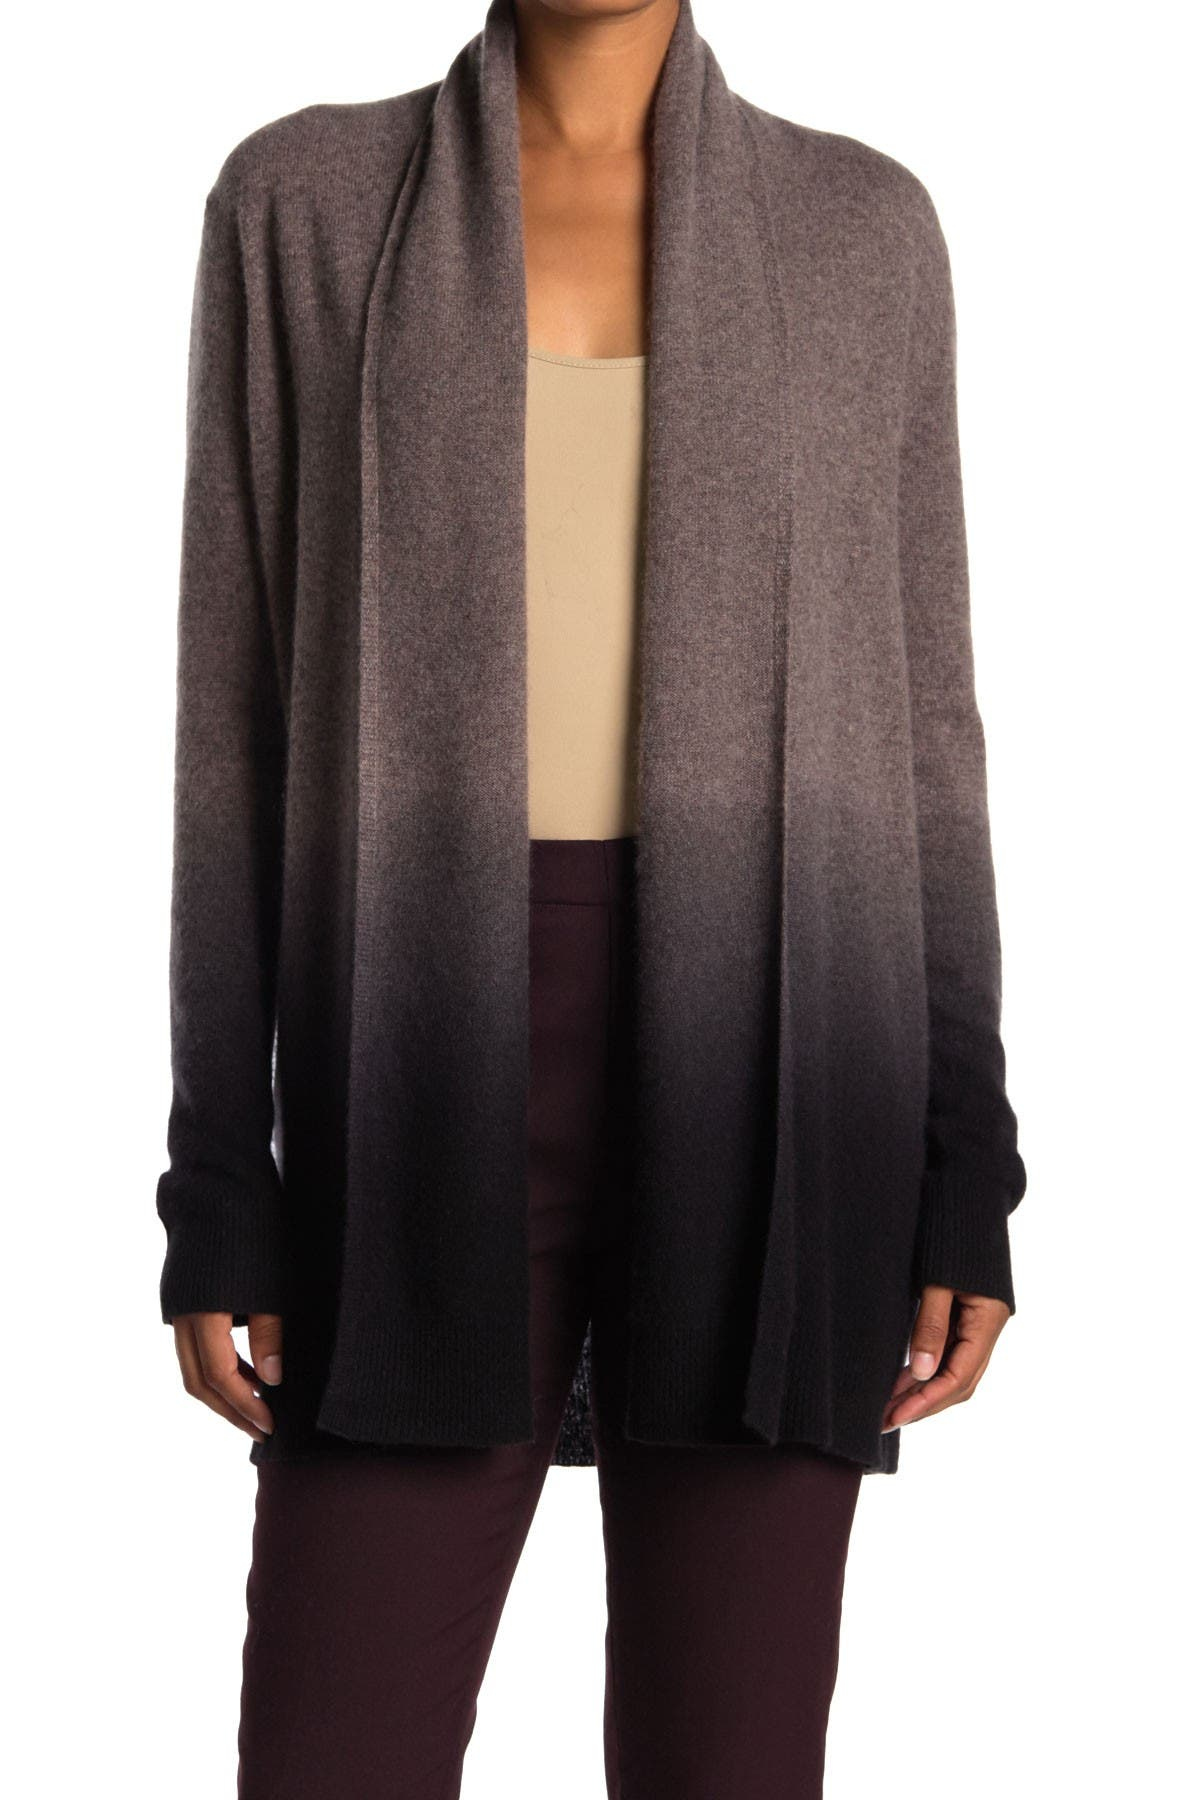 Image of Magaschoni Ombre Shawl Collar Cashmere Cardigan